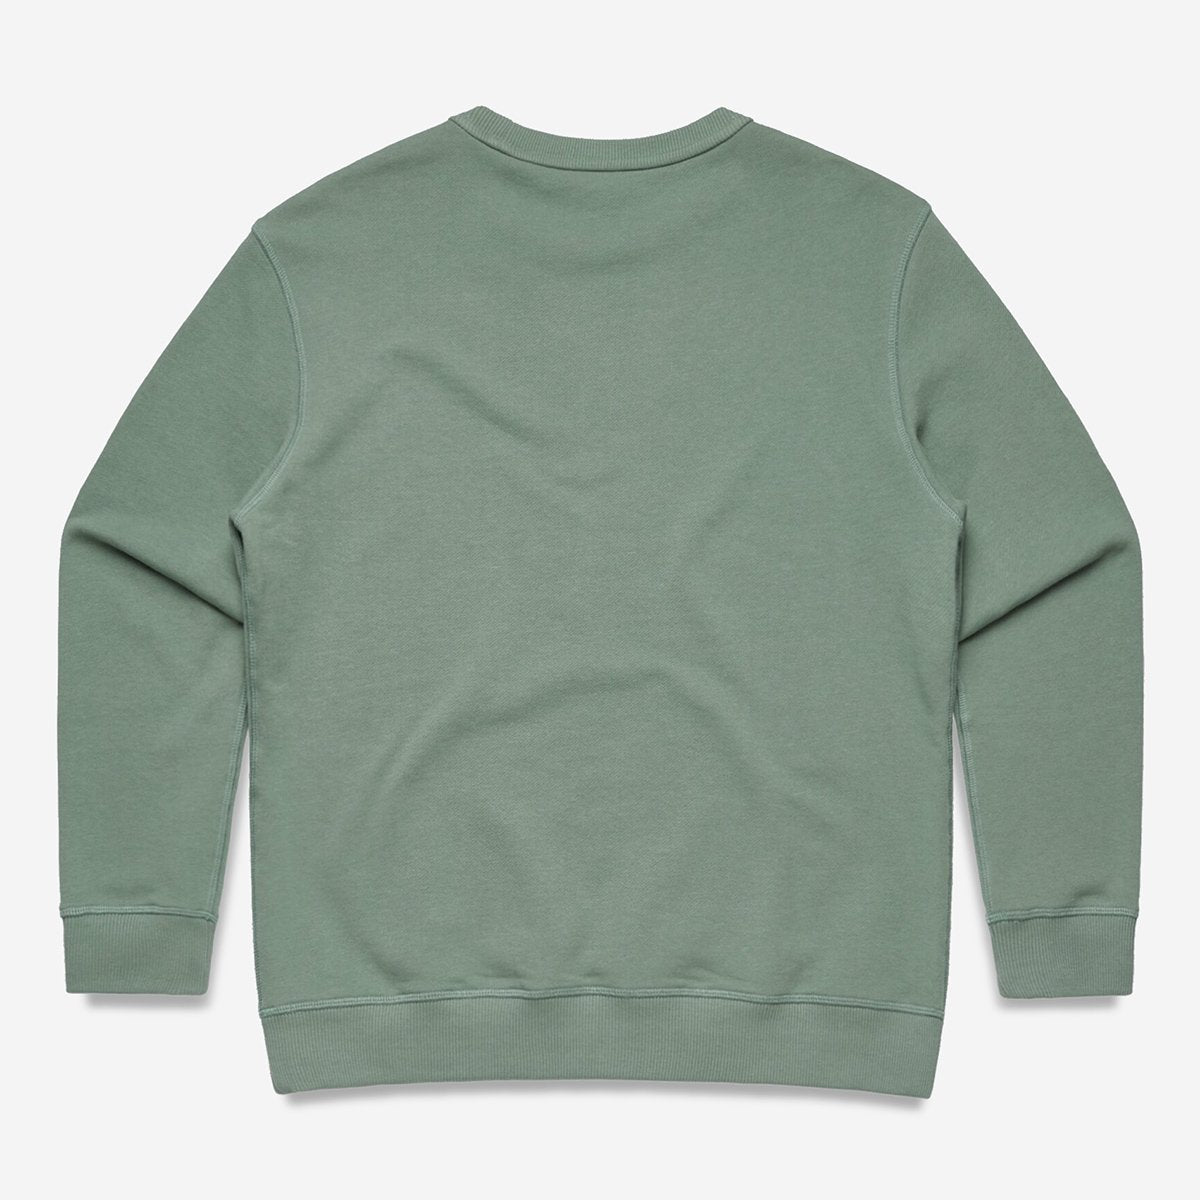 Status Anxiety Good Intentions Jumper in Sage